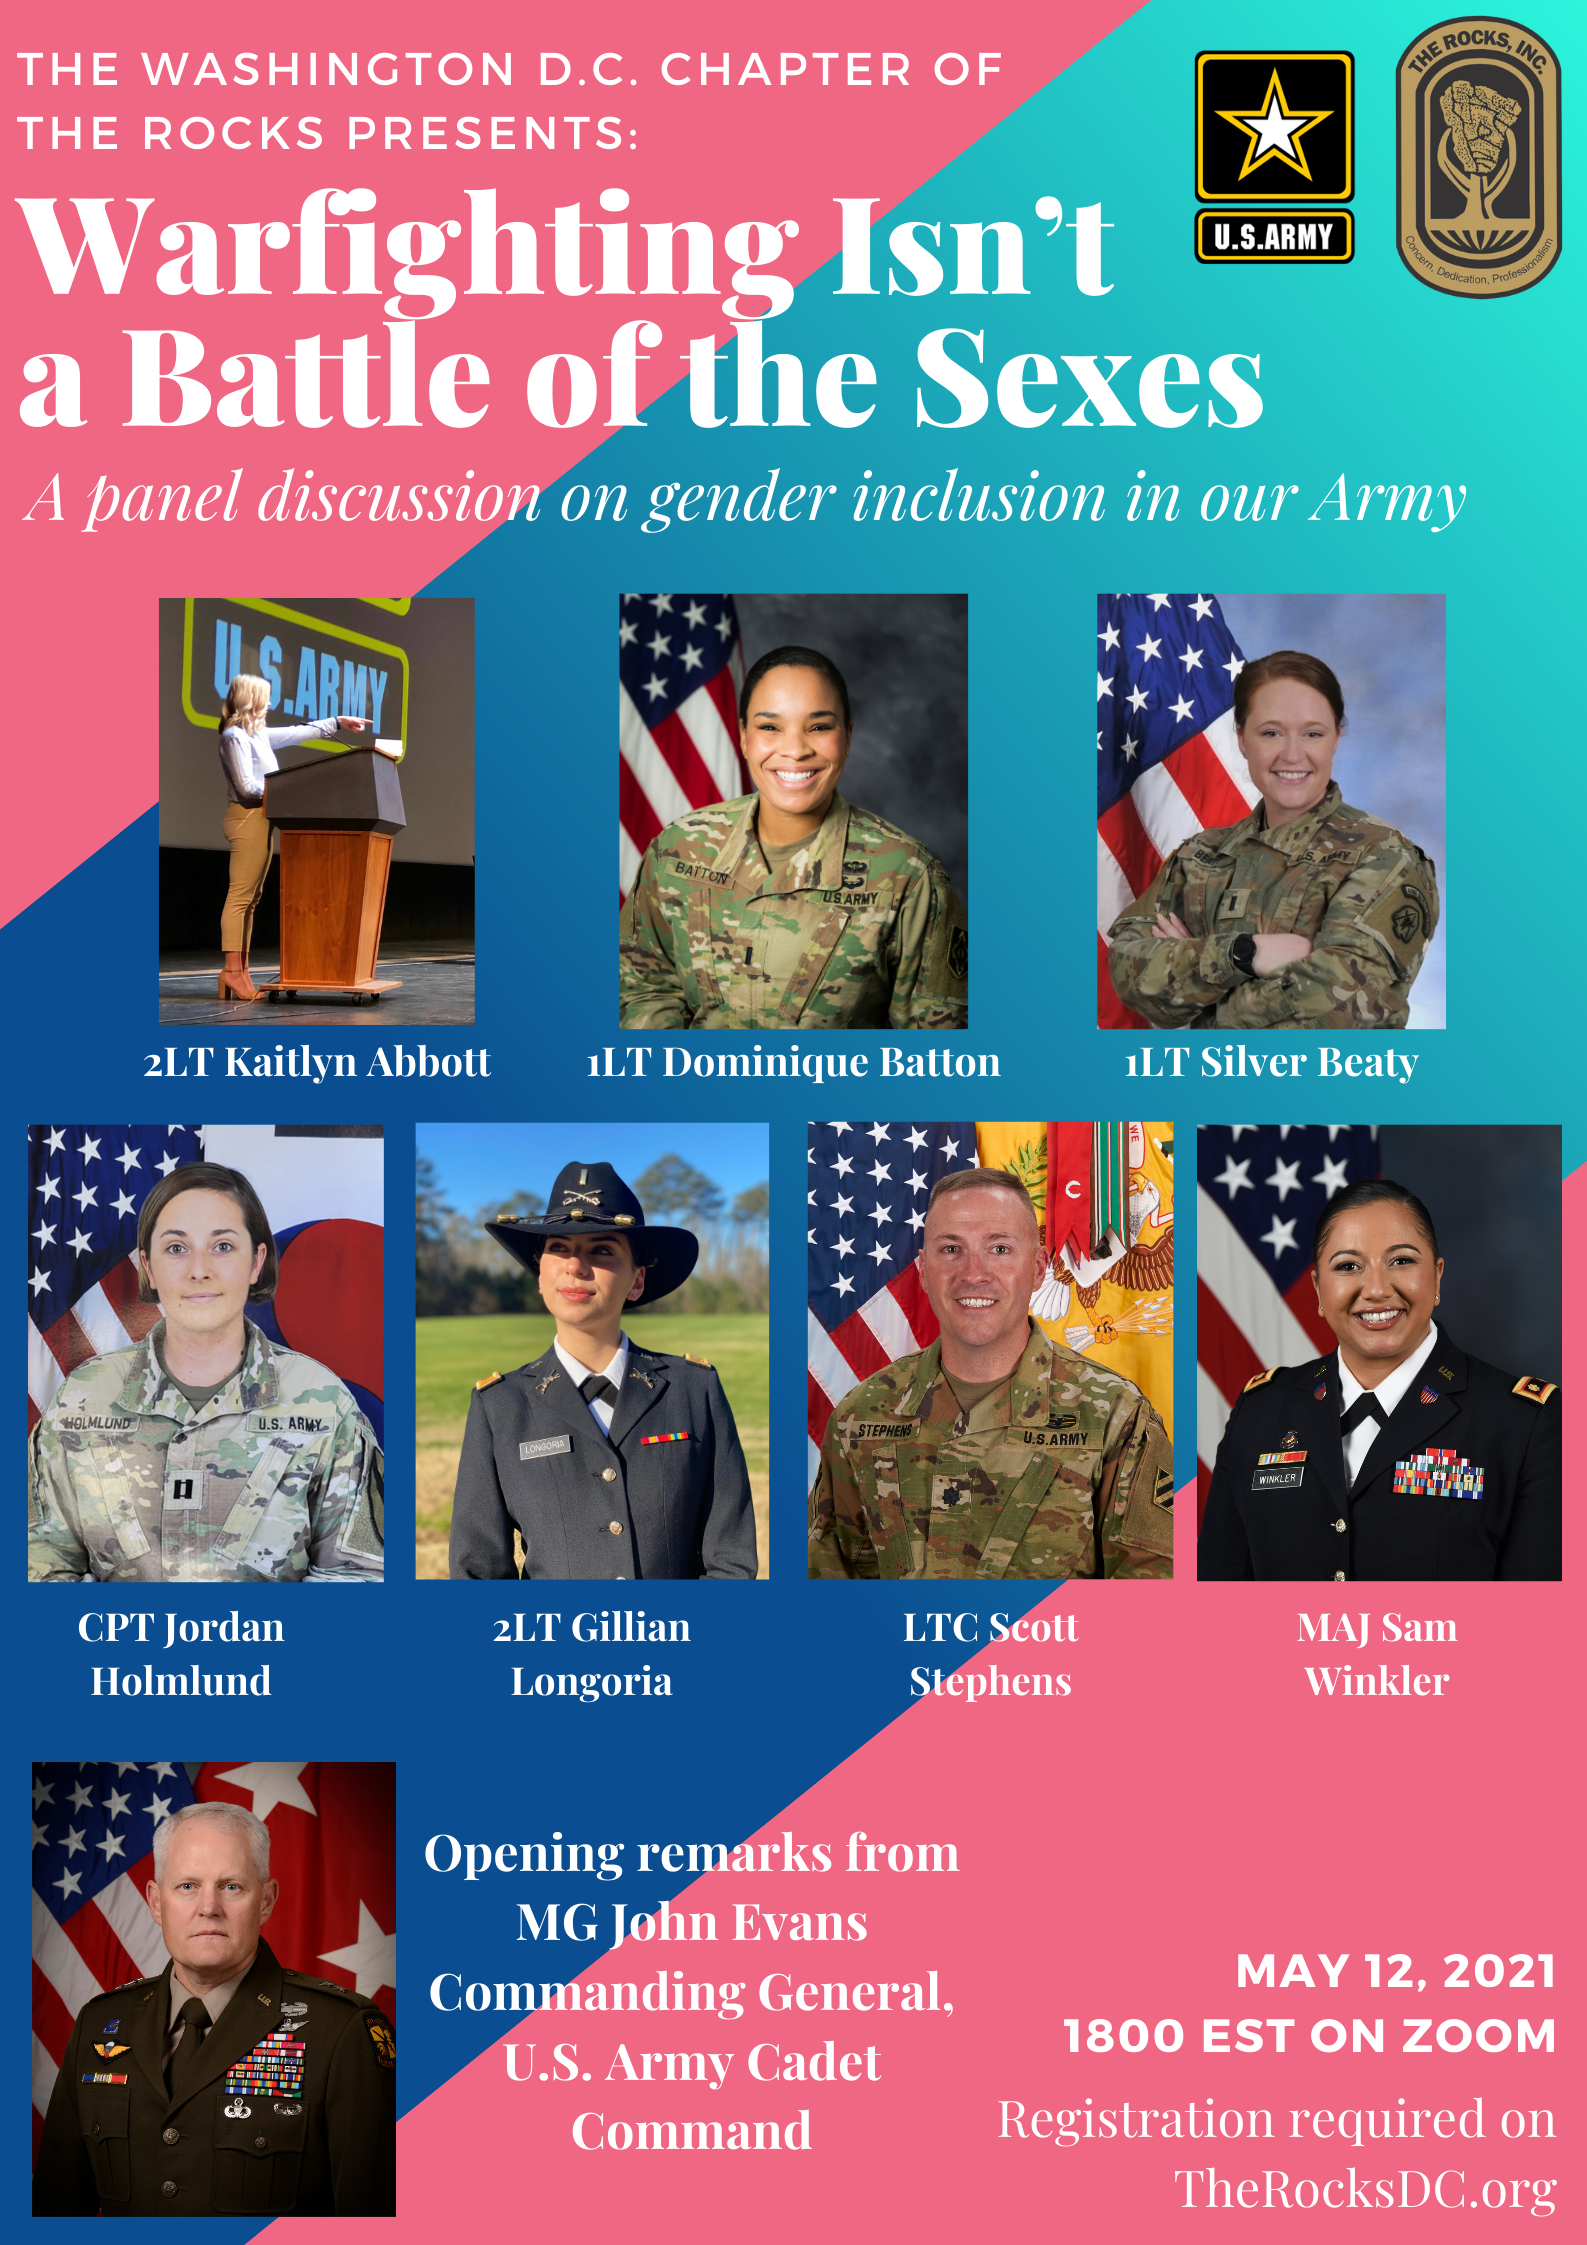 Let's Talk About It: Let's Talk About It: War-Fighting Isn't a Battle of the Sexes